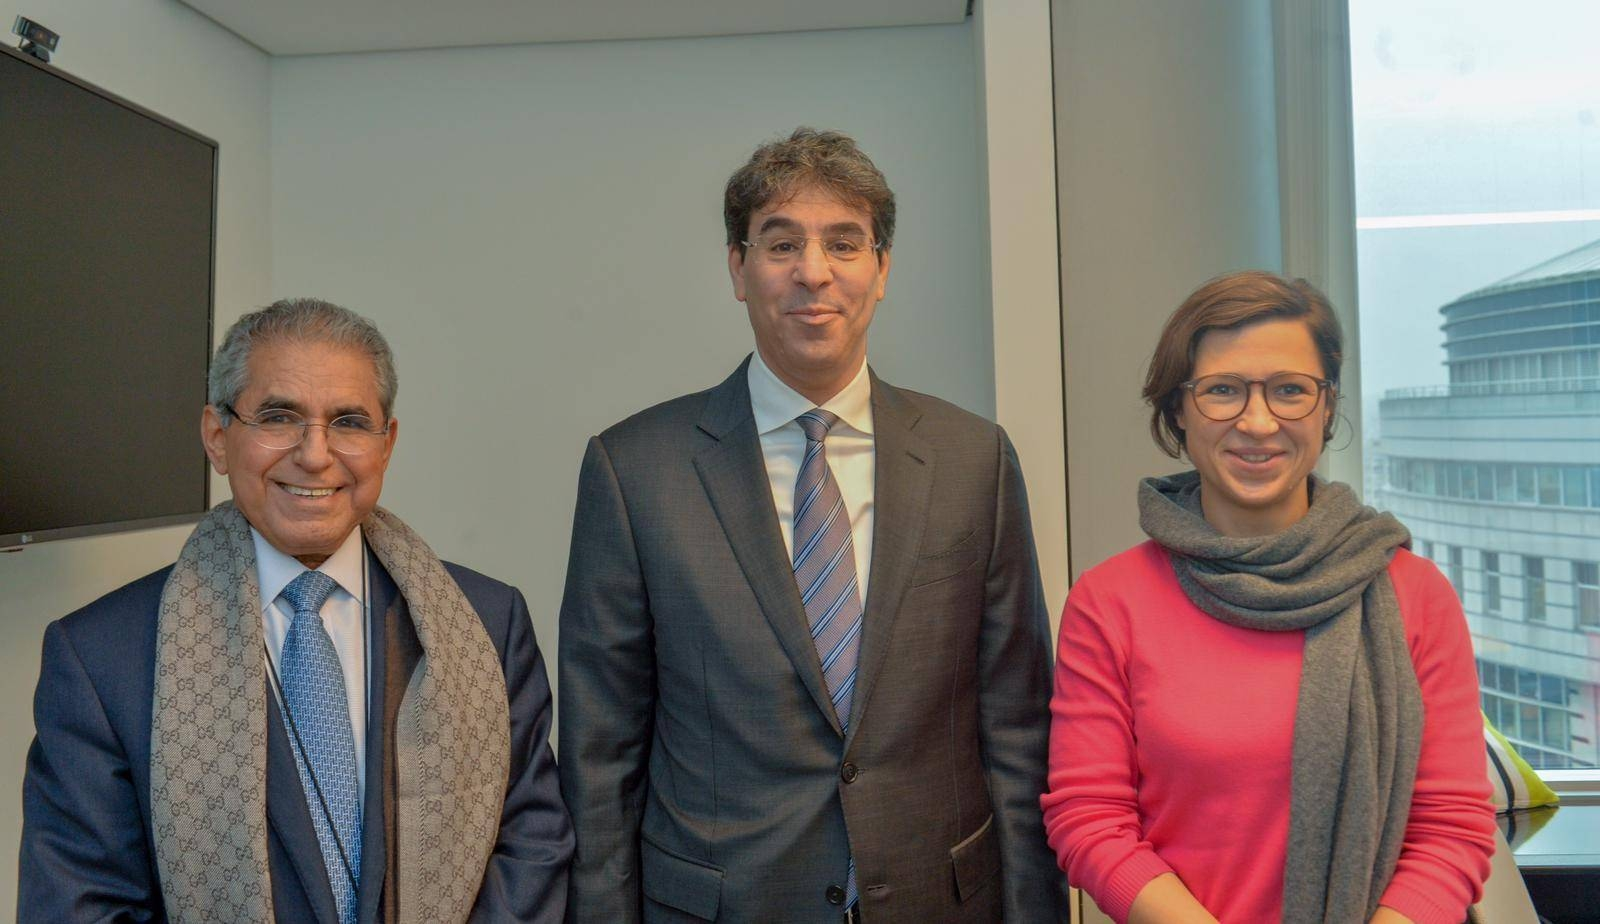 Dr. Al-Awwad Bin Saleh Al-Awwad (center) is flanked by Hannah Neumann, the Chair of the European Parliament Delegation for Relations with the Arab Peninsula and Vice-Chair on the Subcommittee for Human Rights; and Ambassador Saad Bin Mohammed Al-Arifi, head of the Saudi Mission to the European Union; in Brussels. — Courtesy photo